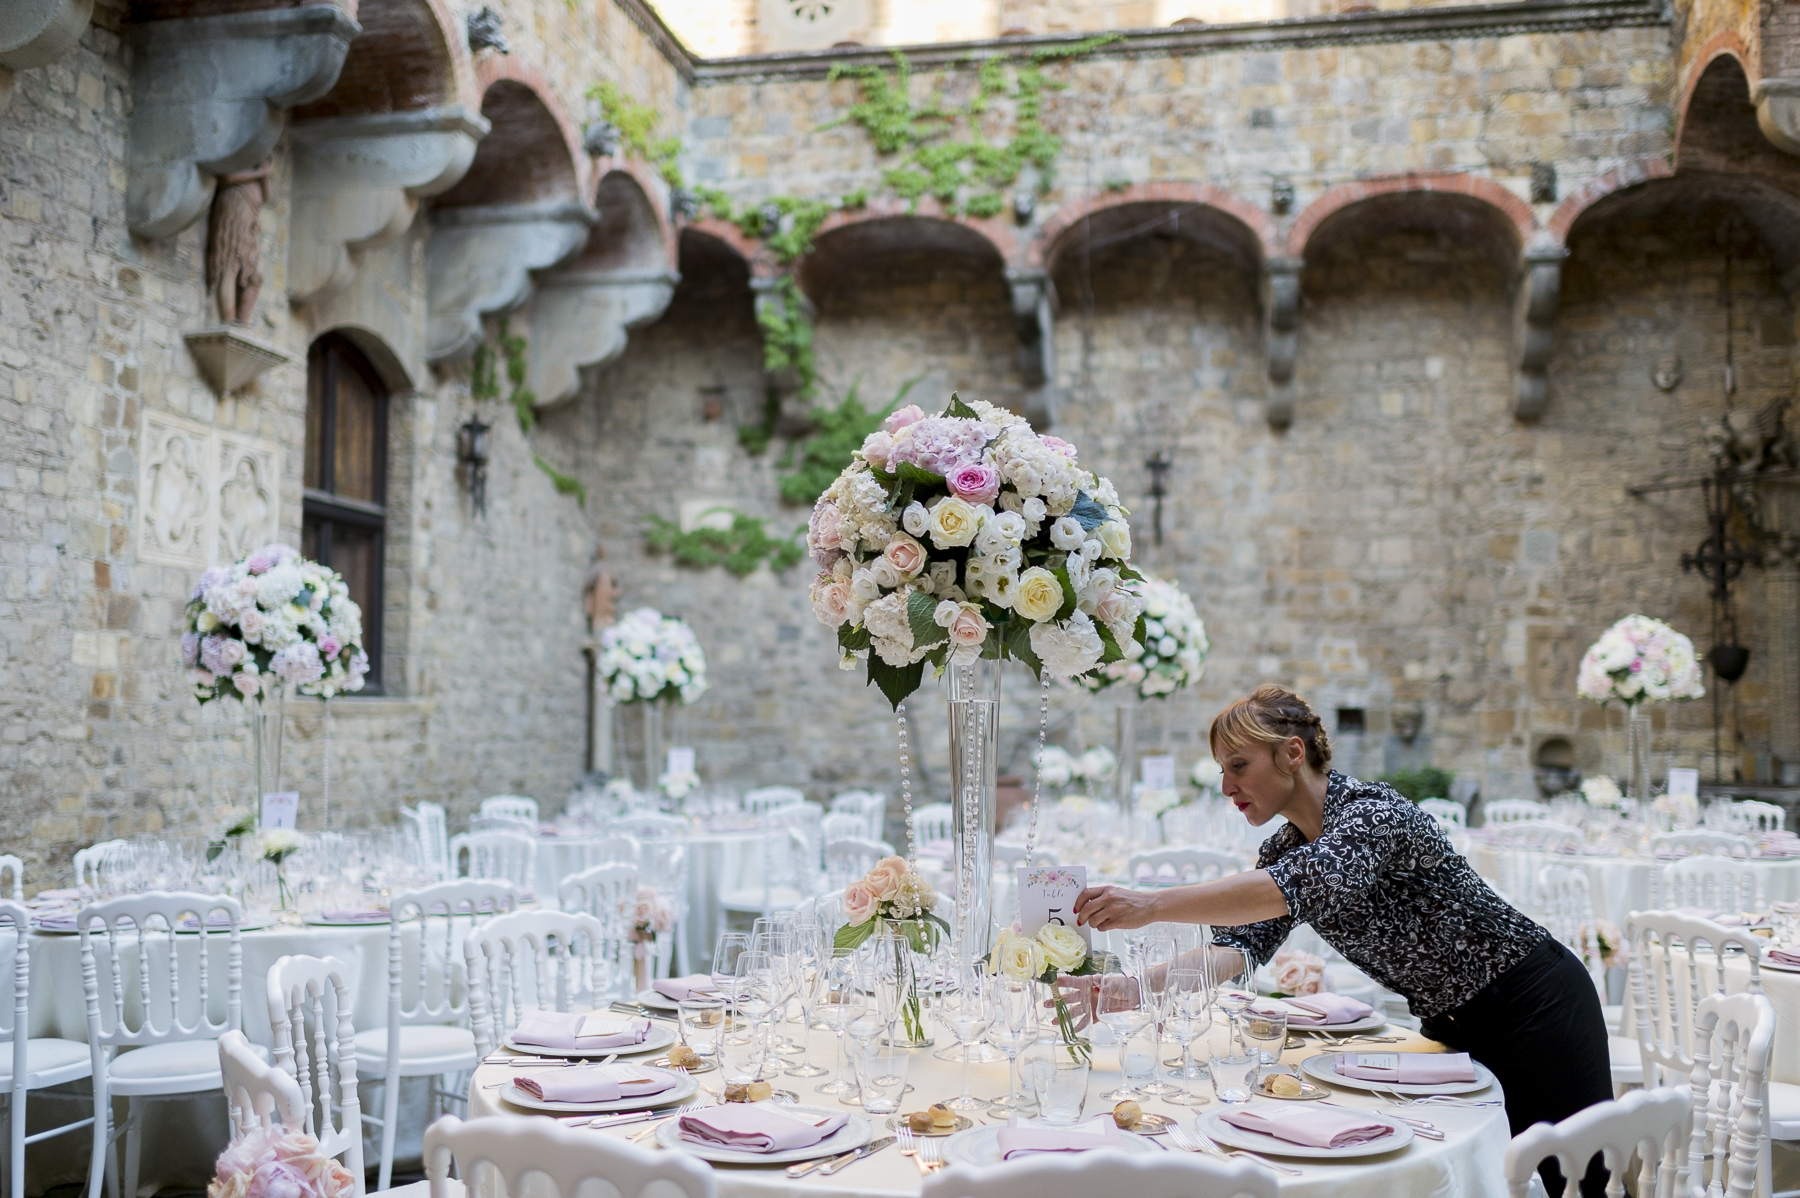 Wedding reception in Florence – Rose and Joshua